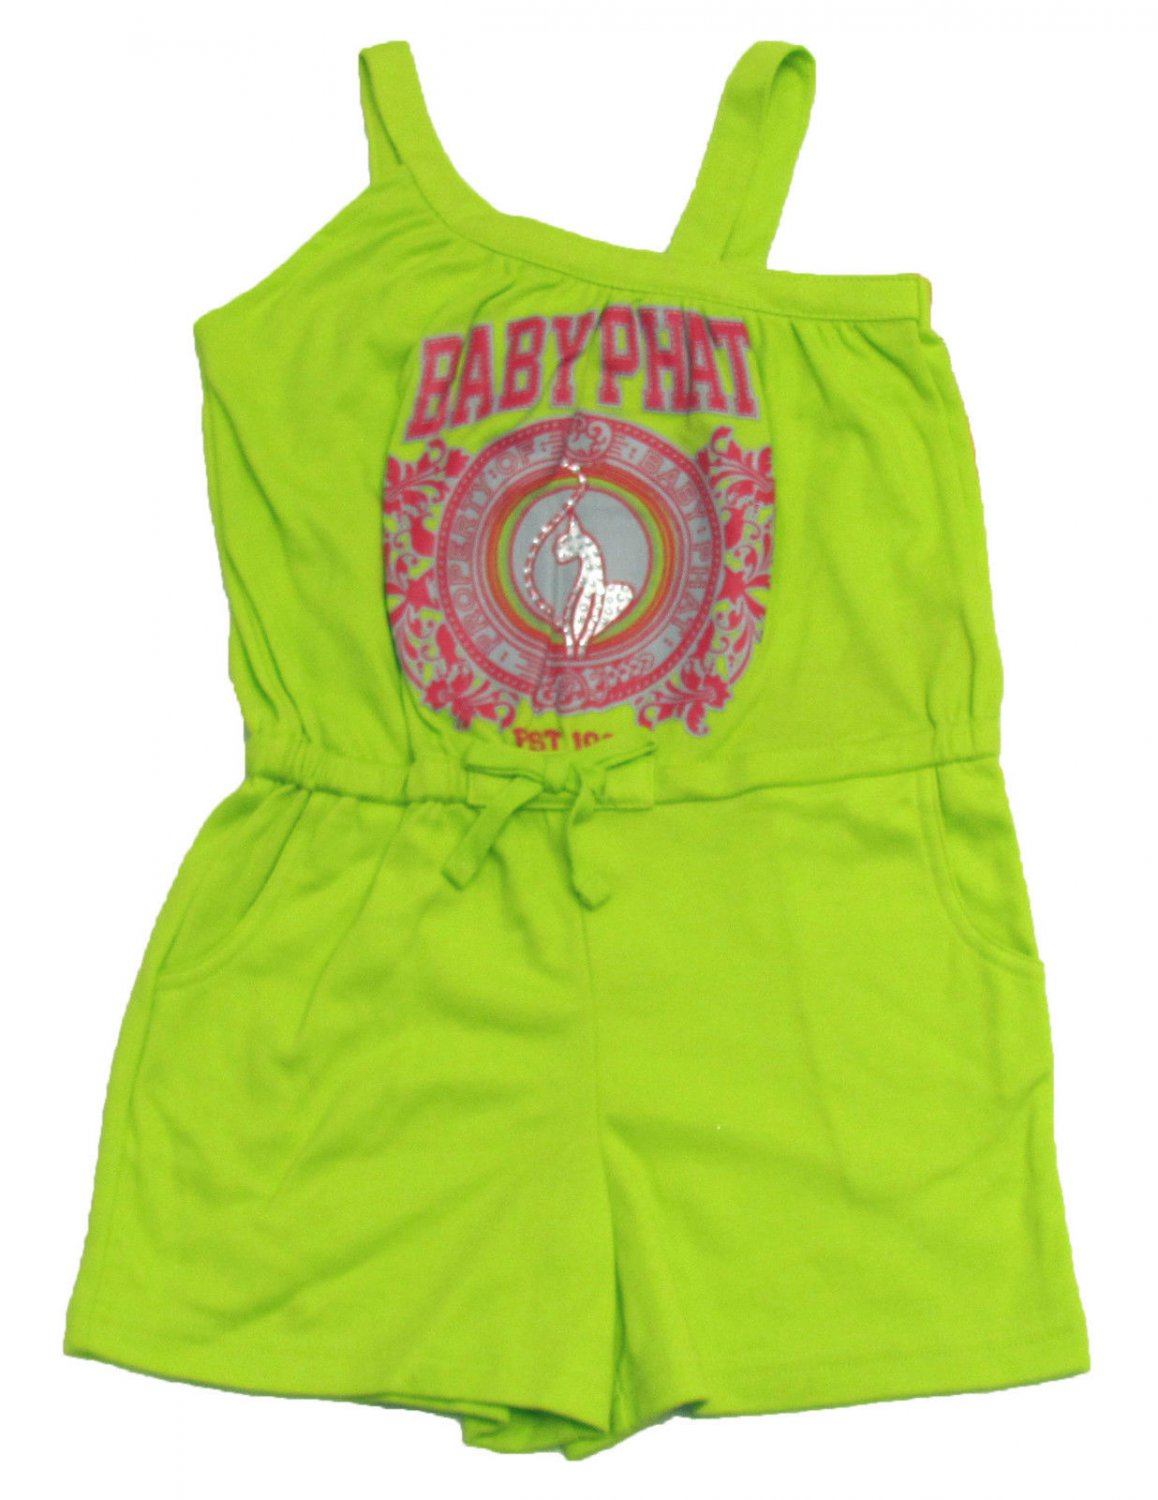 Baby Phat Girls 5-6 Romper Lime Green Tank Top One-piece Shorts Suit Kids